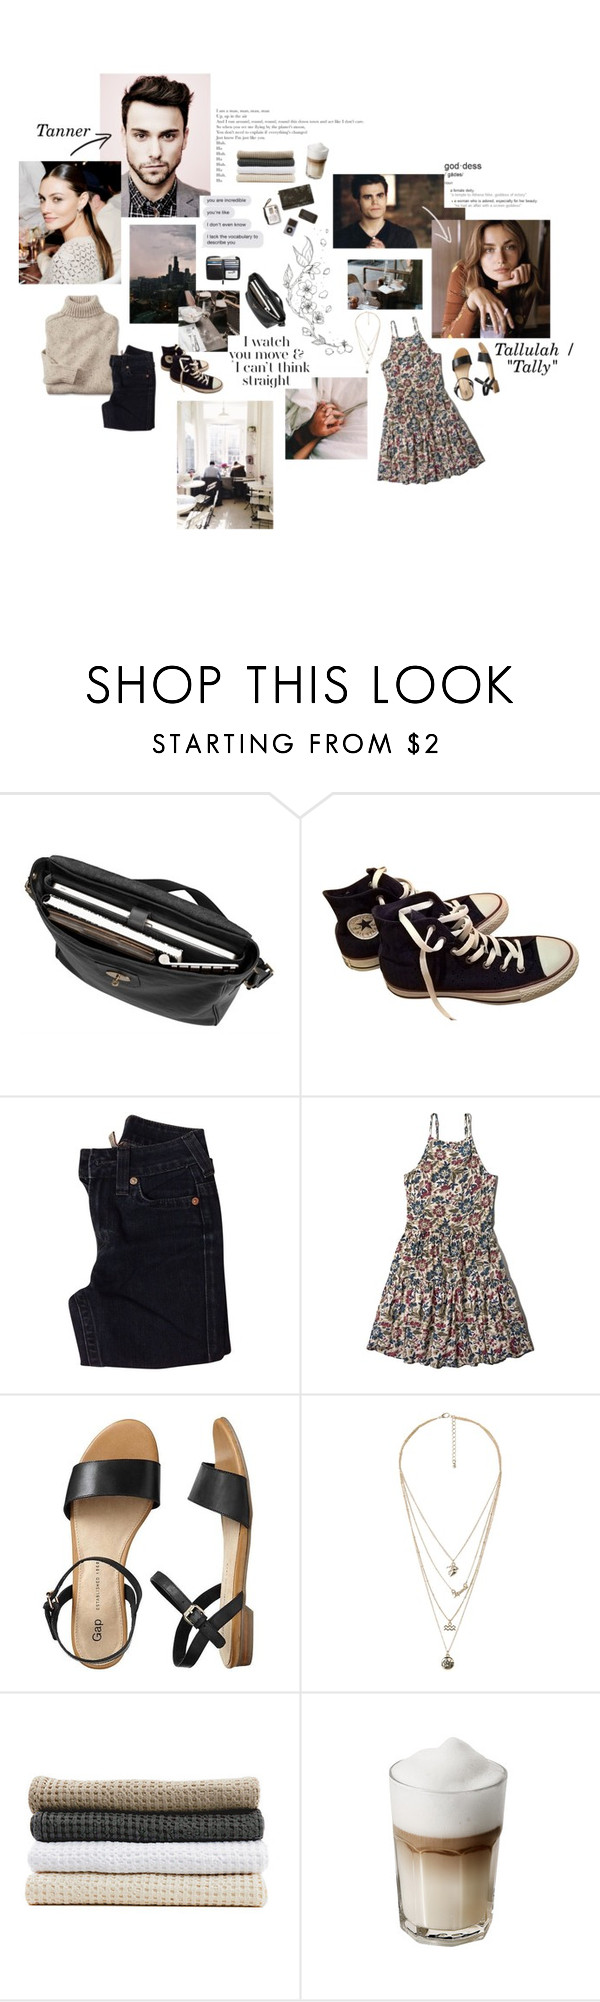 """""""I watch you move and I can't think straight."""" by sarahstardom ❤ liked on Polyvore featuring Mulberry, Sebastian Professional, Converse, True Religion, Abercrombie & Fitch, Gap, MANGO, Abyss & Habidecor and 12"""